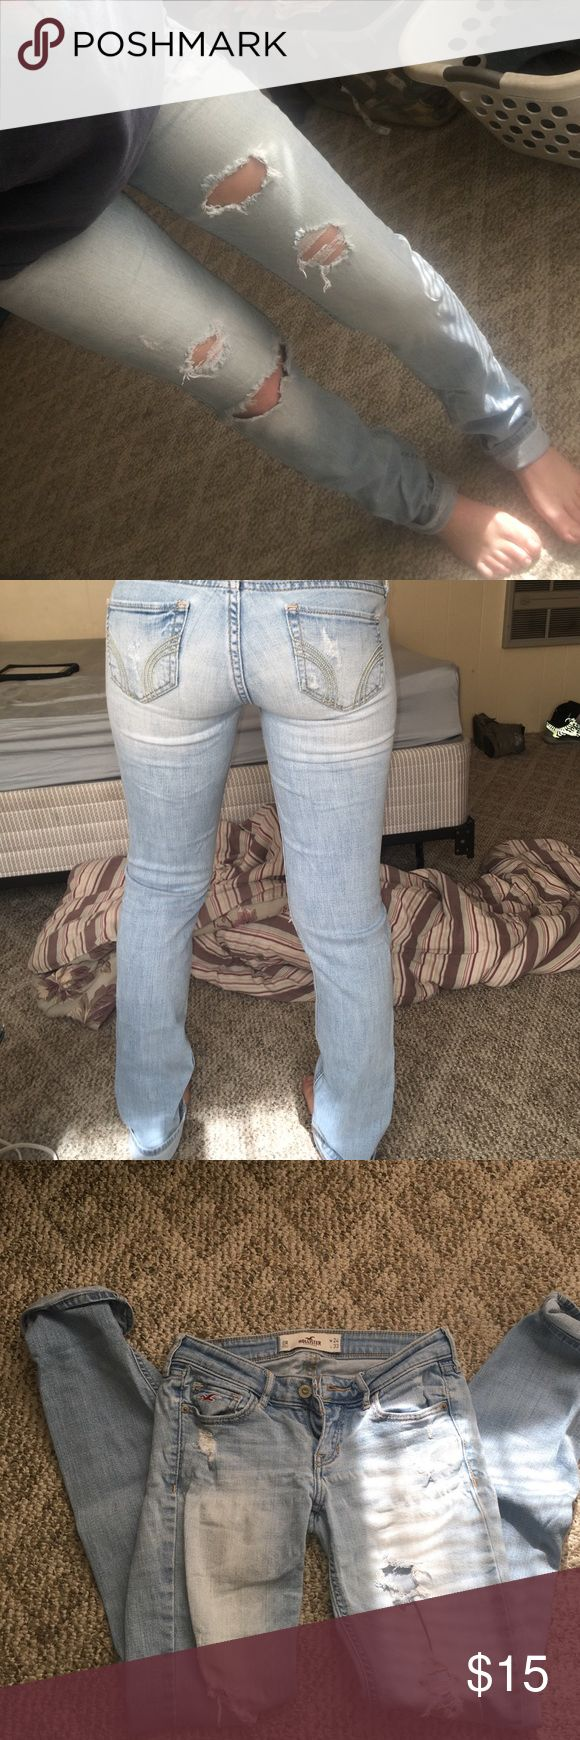 Faded hollister jeans Very cute hollister jeans. Looks great with everything ! Comfortable and like brand new. No flaws Hollister Pants Skinny